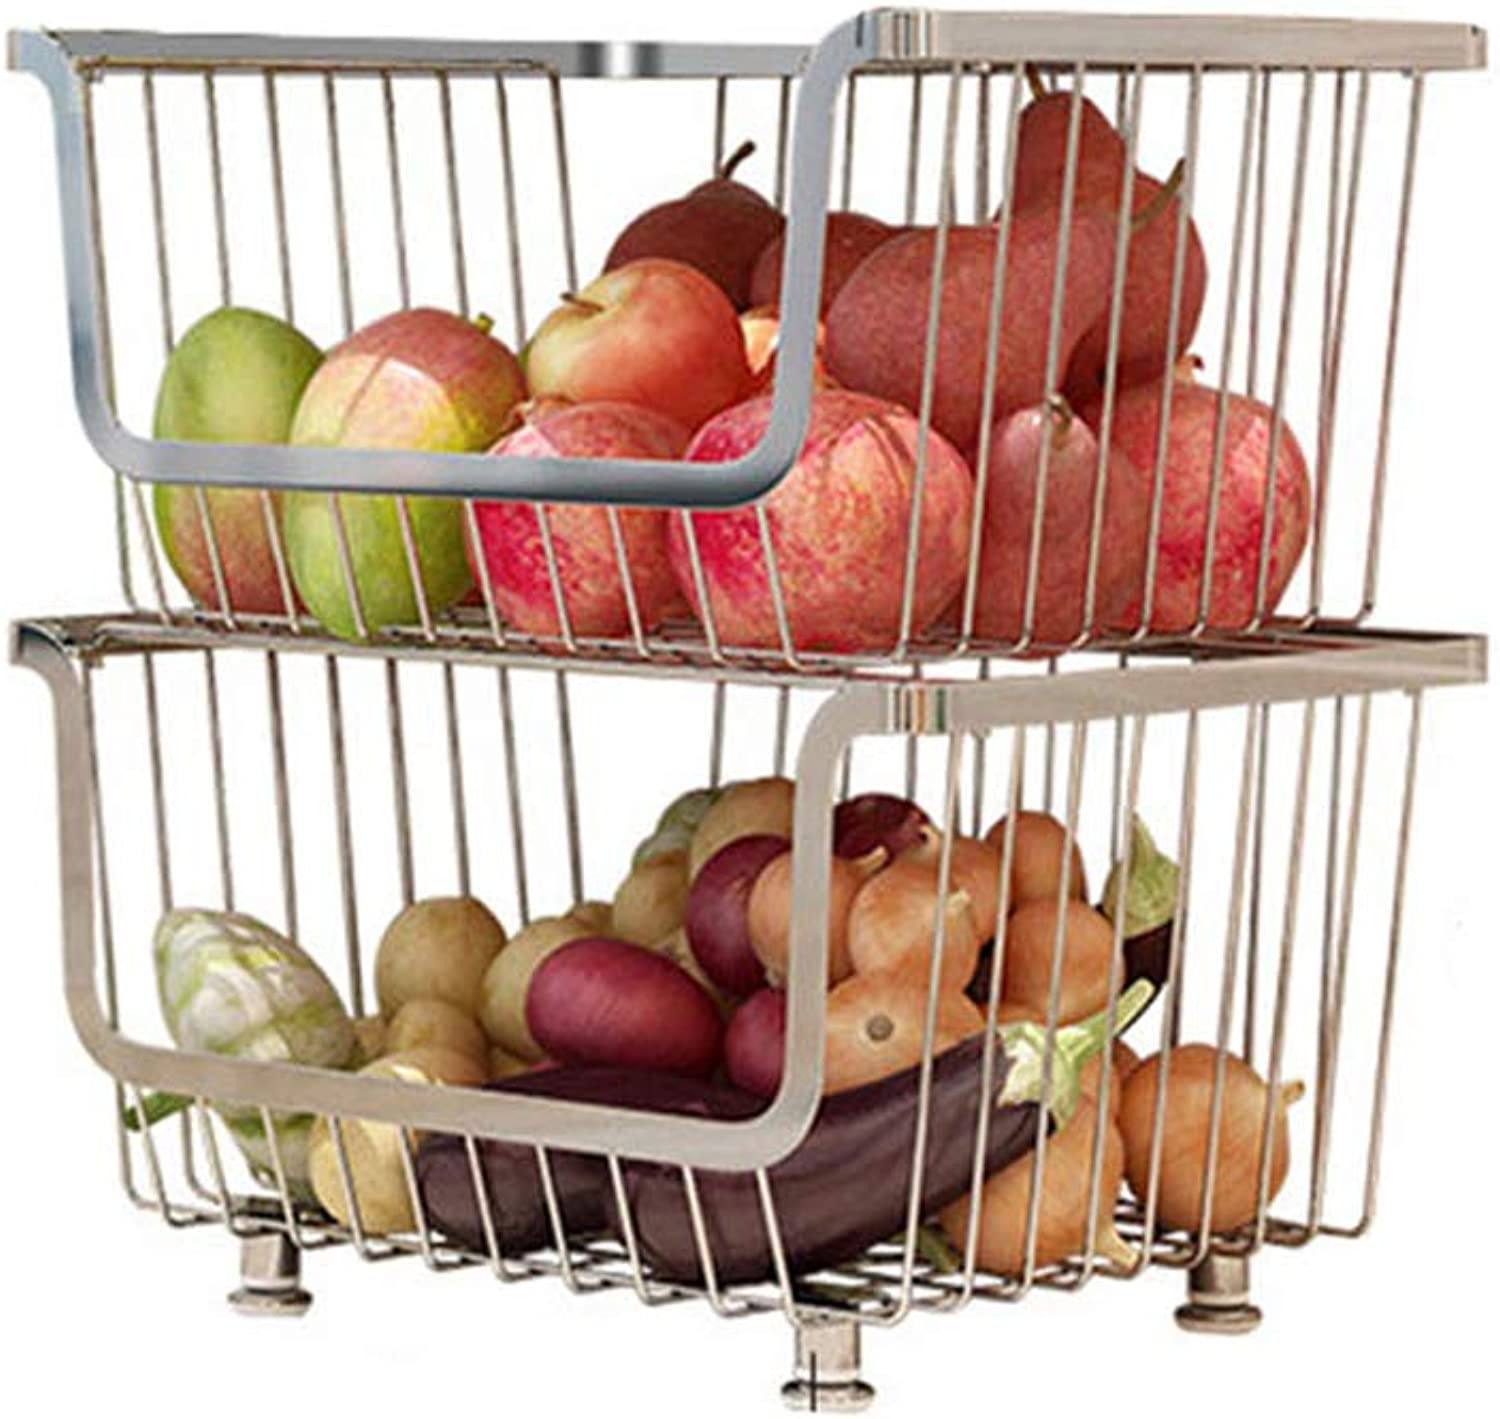 Stainless Steel Kitchen Double Layer Cart with Baskets Fruit Bin Rack Baskets Stackable Metal Storage Organizer Bin for Cabinets Pantry Easy Moving